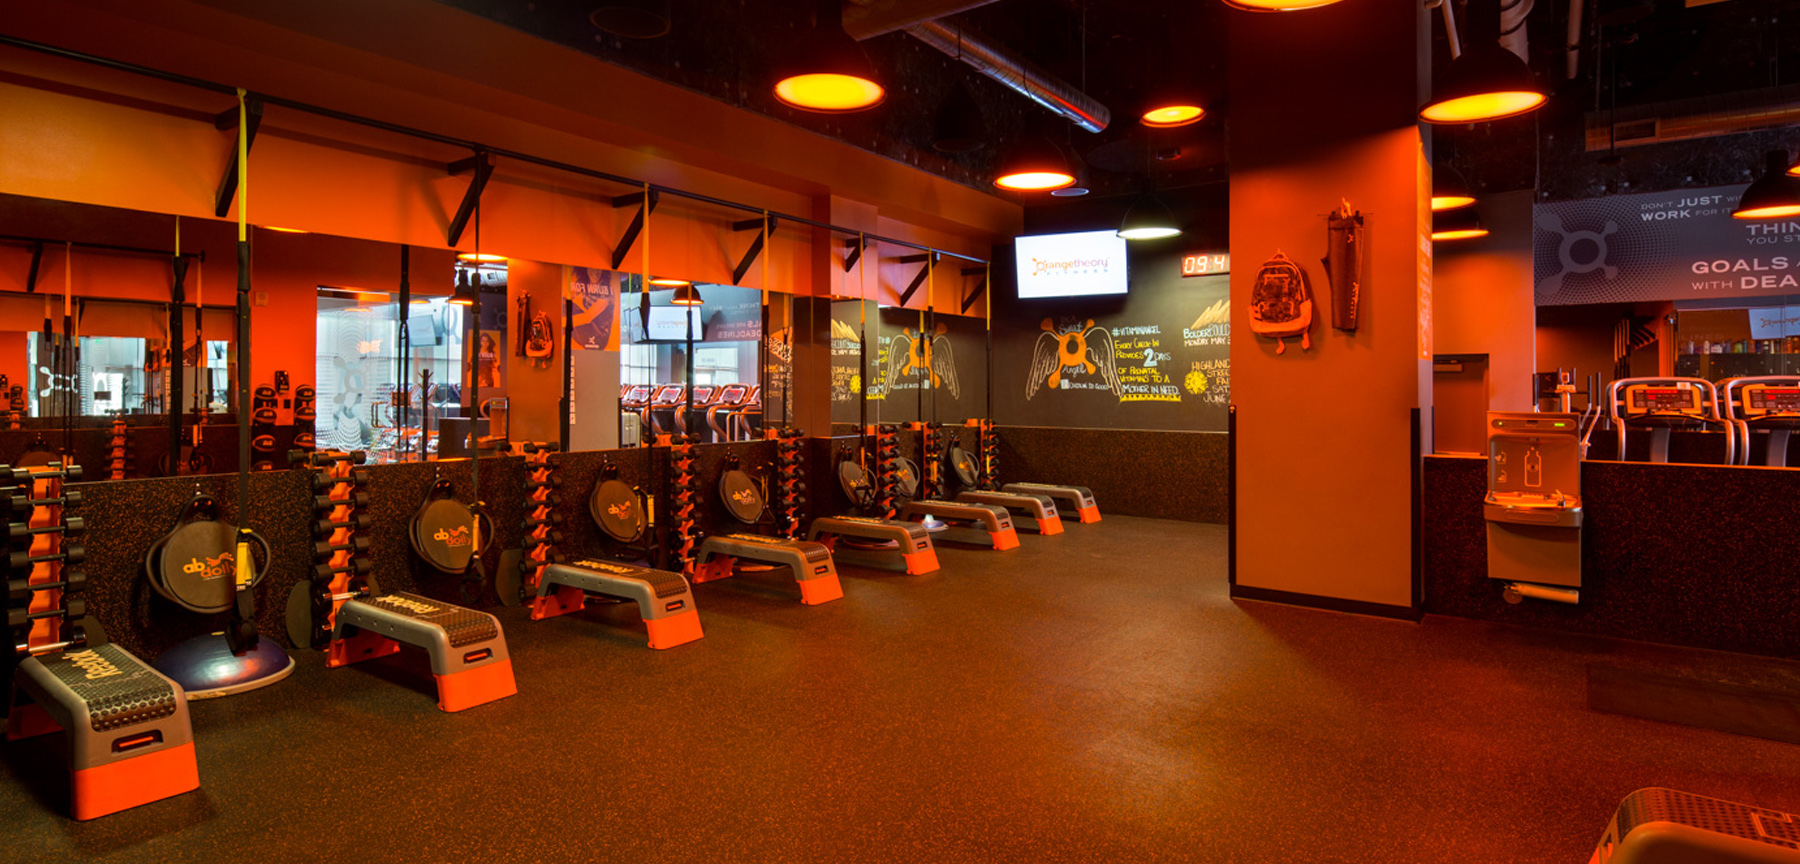 Orangetheory fitness TRX area